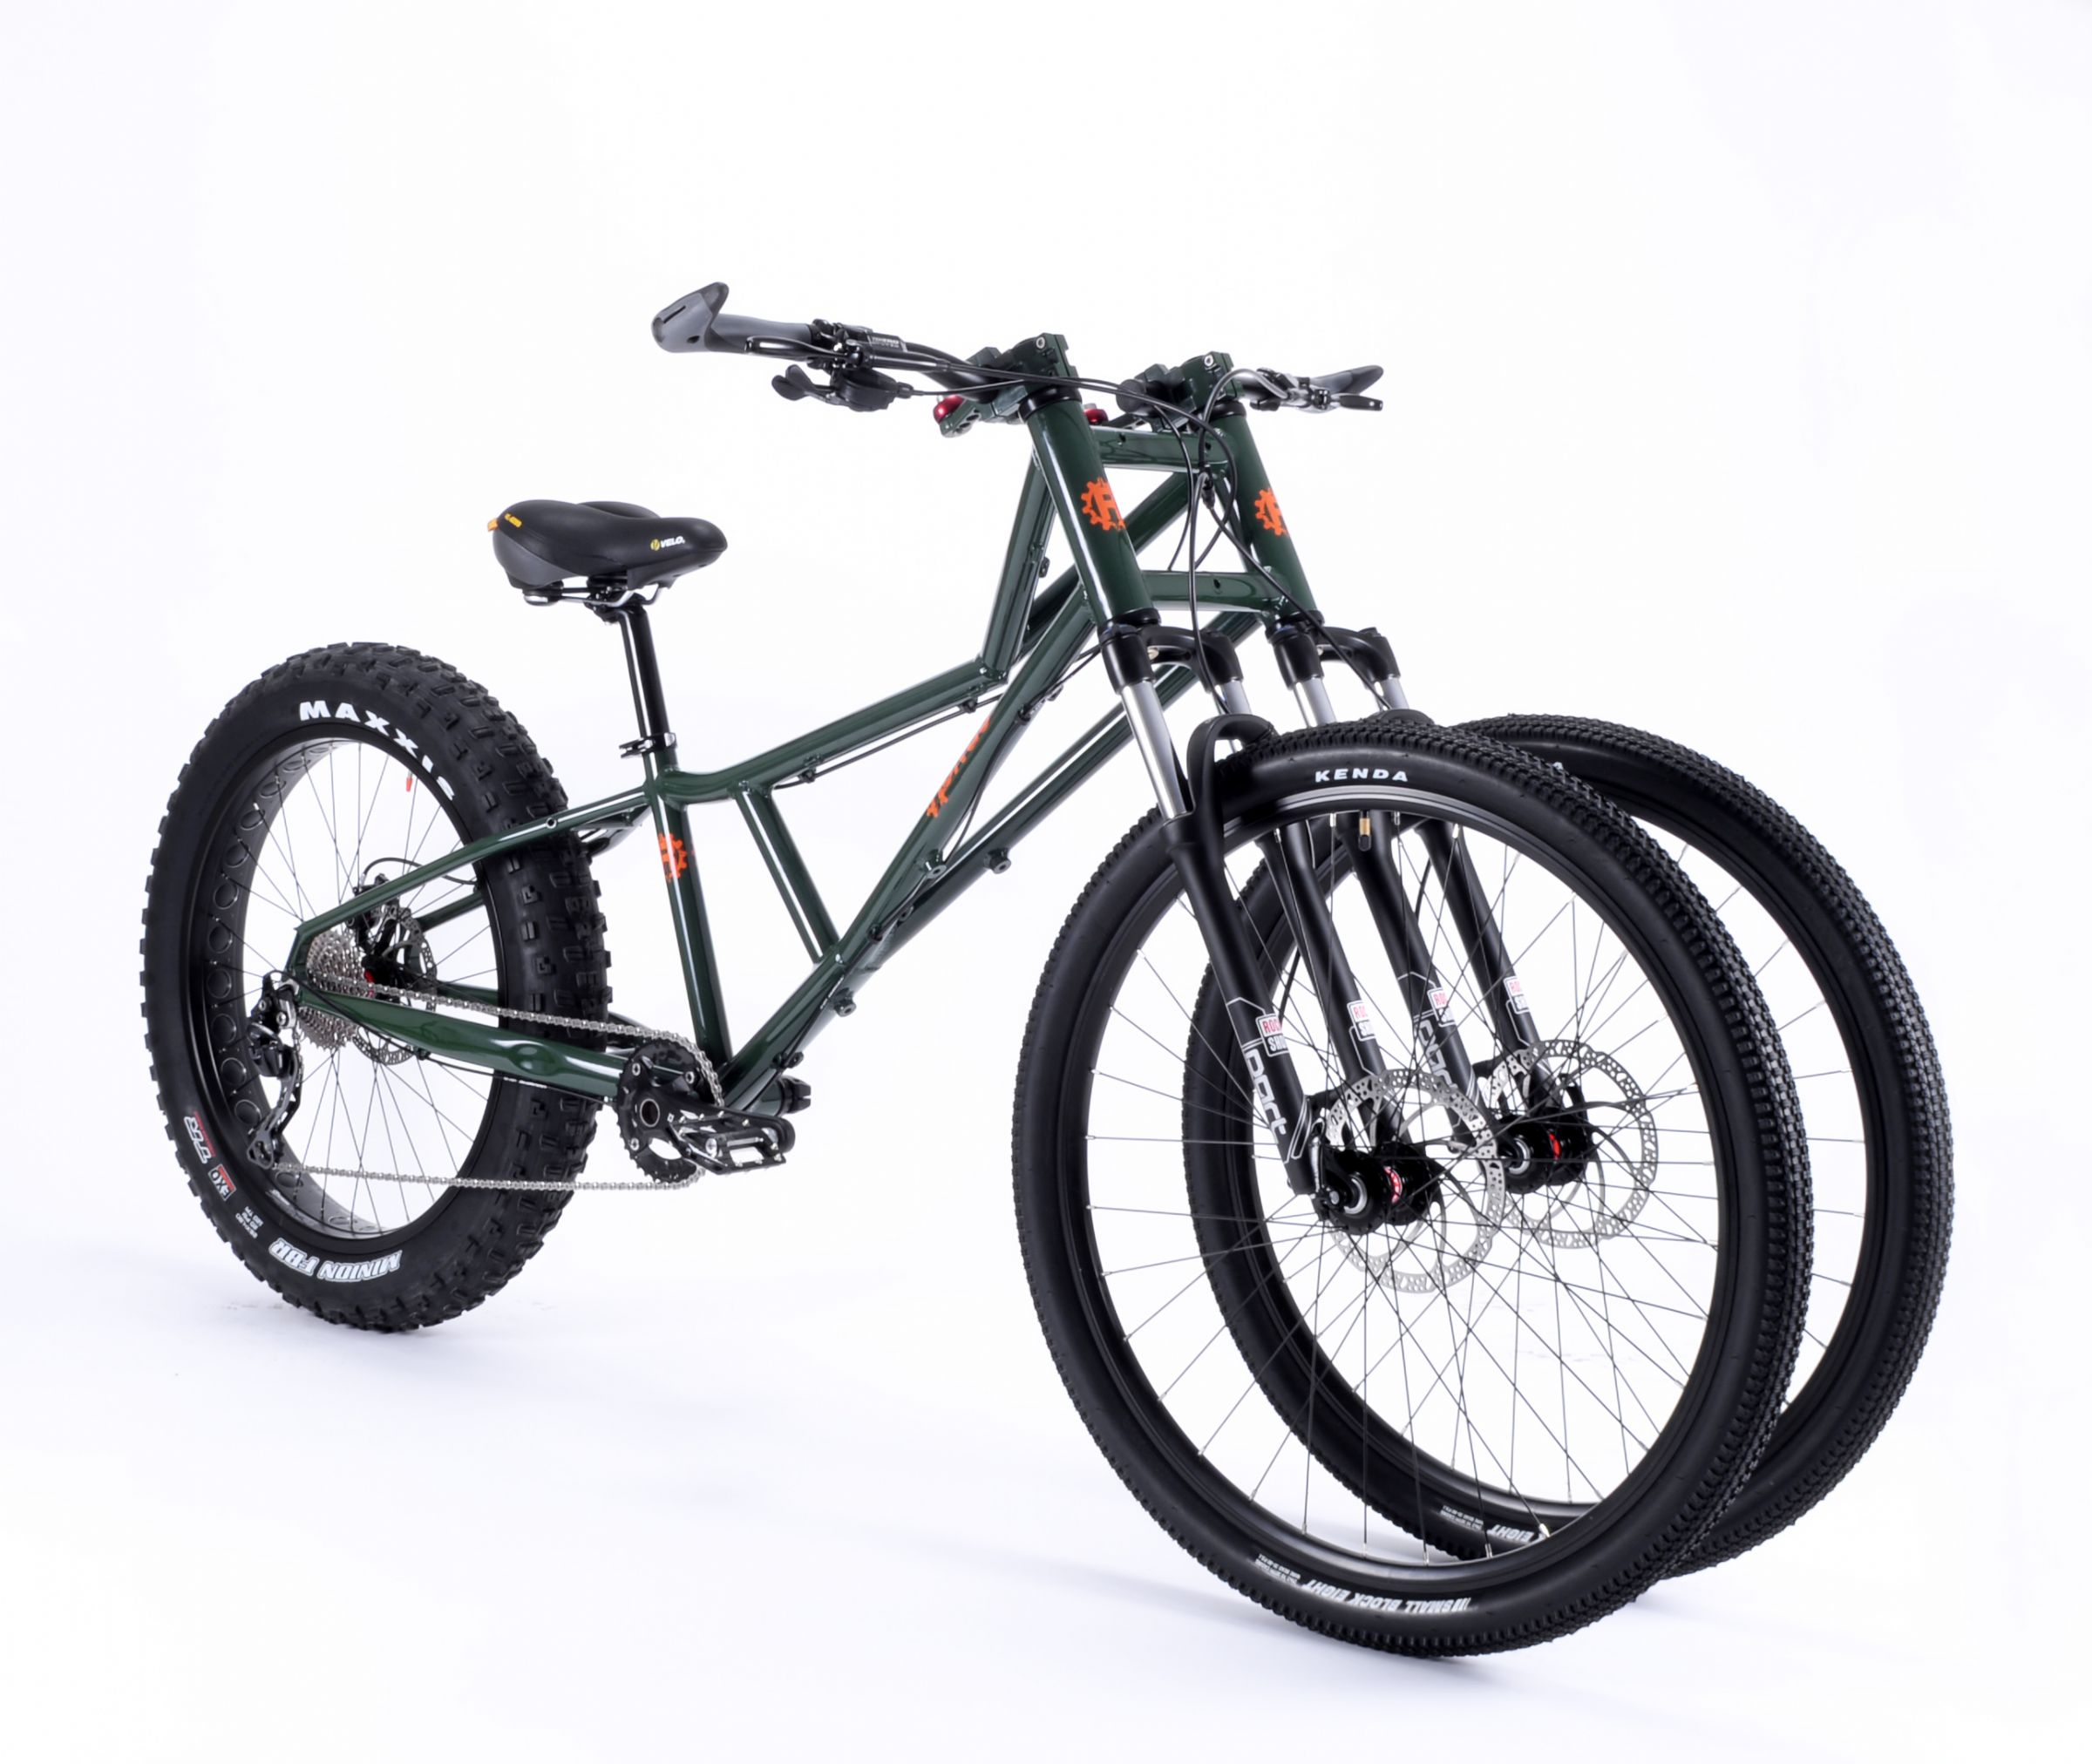 Rungu Kilimanjaro Fat-Tire Adult Trike